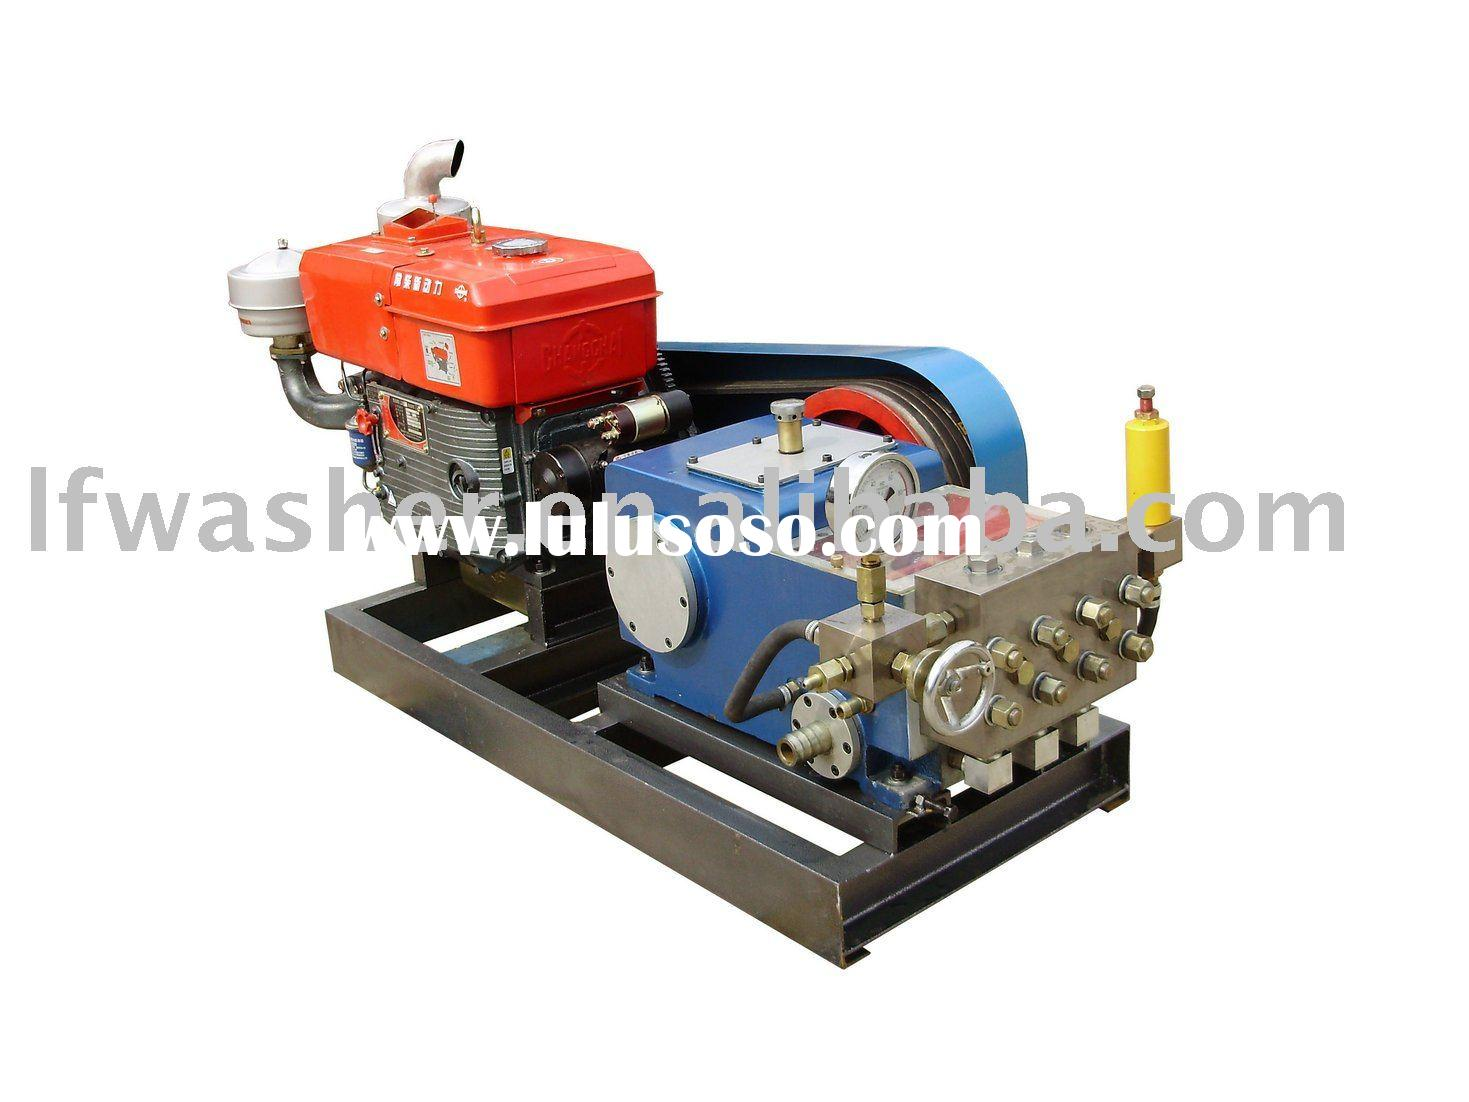 water jet machine, sewage cleaner, high pressure washer